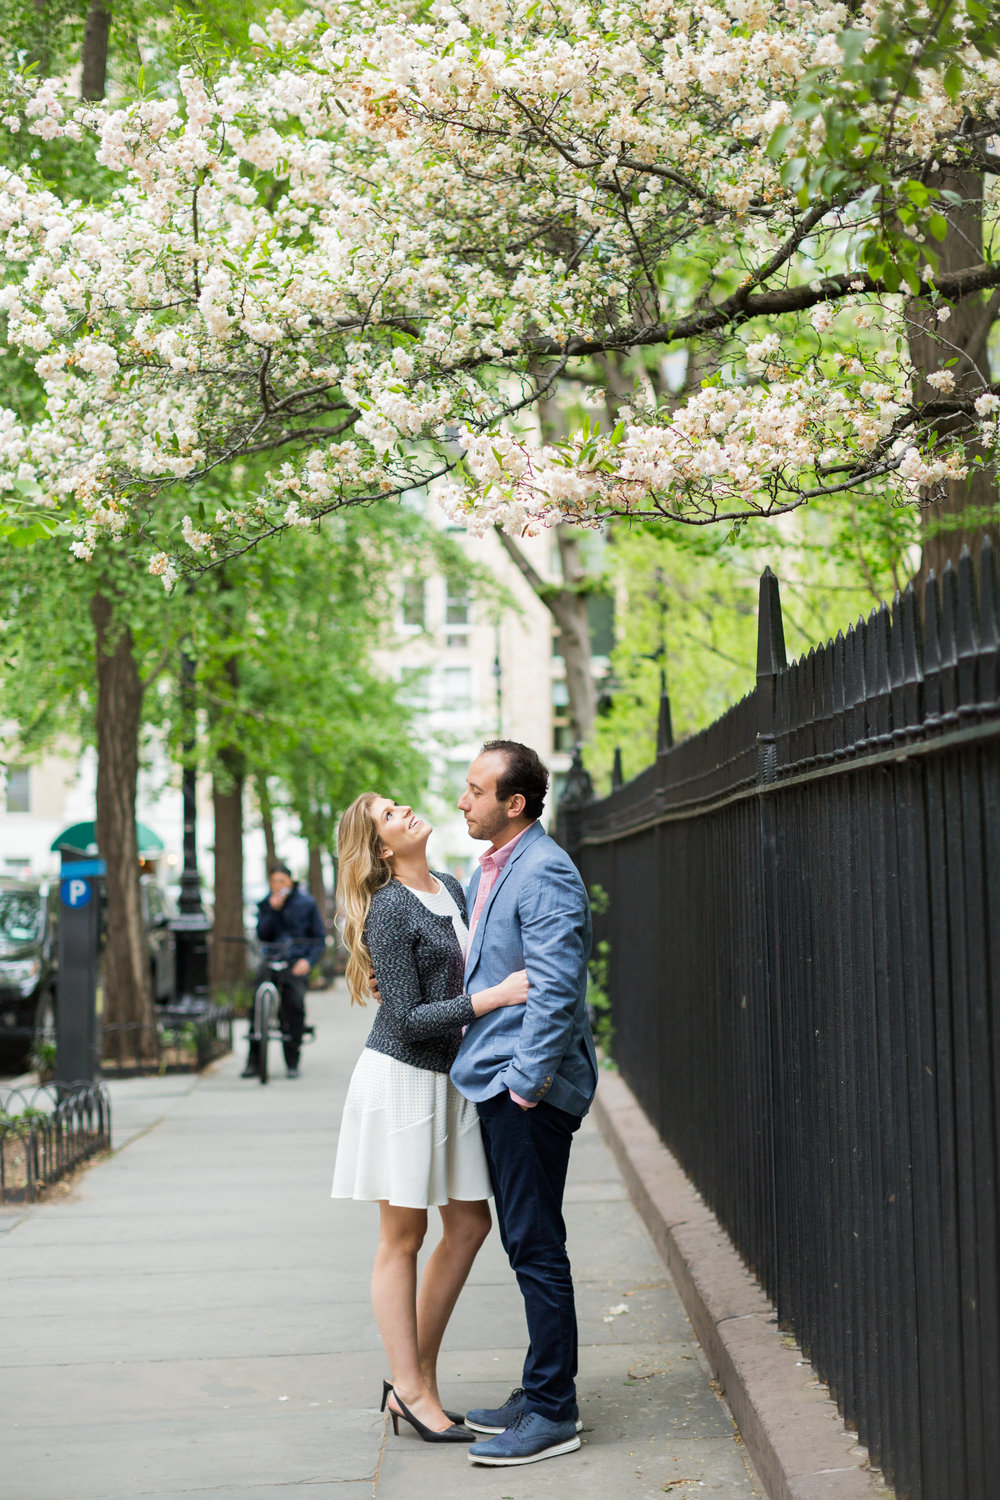 Melissa Kruse Photography - Courtney & JP Gramercy NYC Engagement Photos-151.jpg